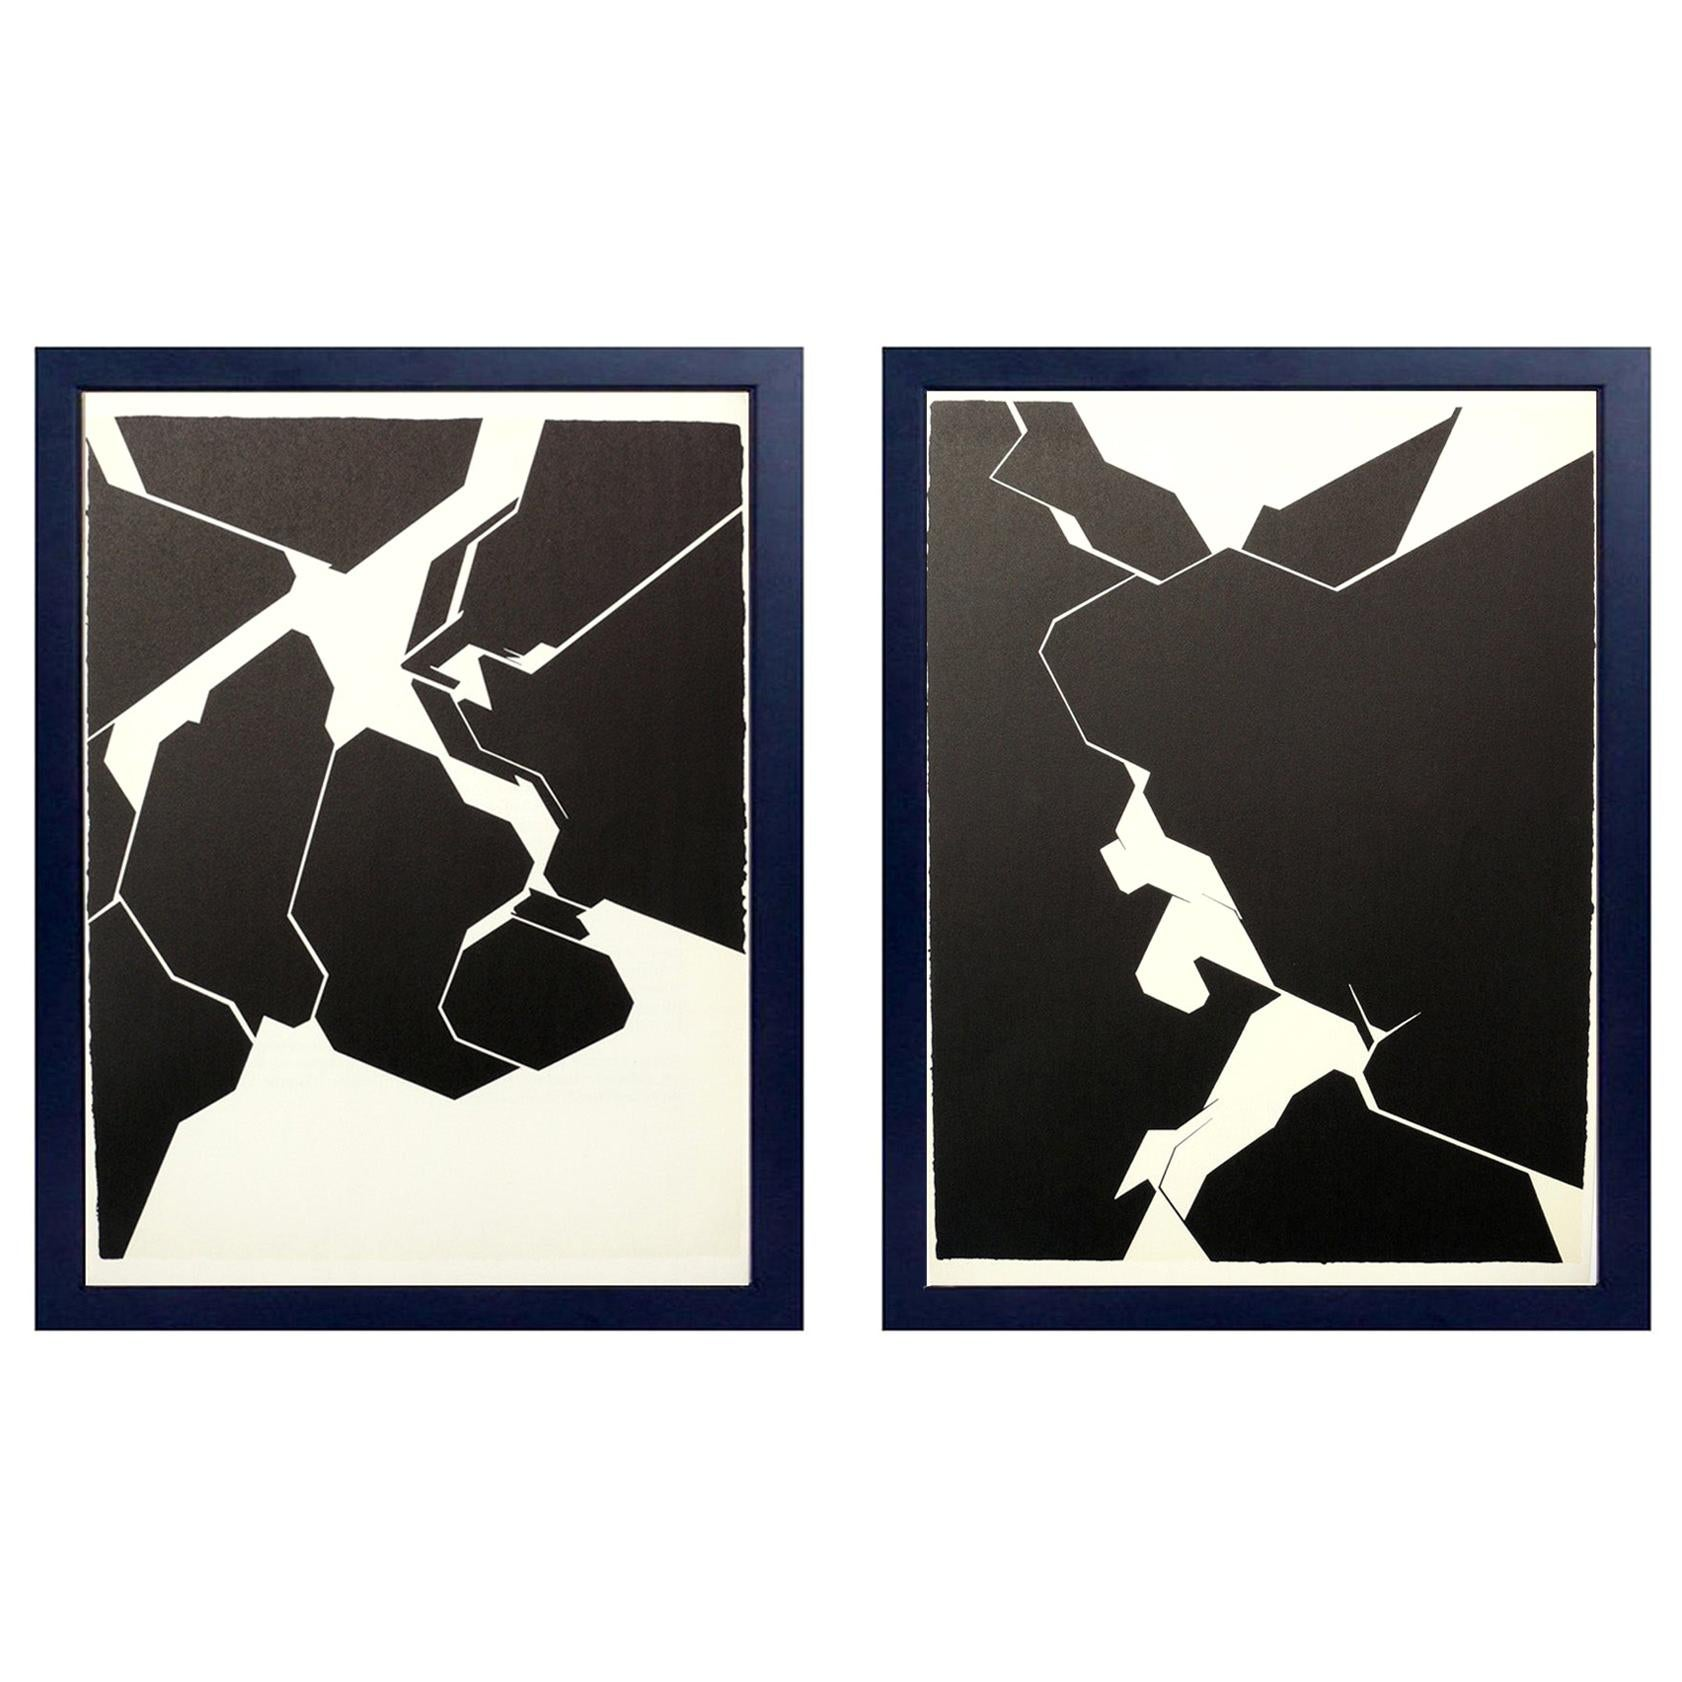 Black and White Abstract Lithographs by Pablo Palazuelo